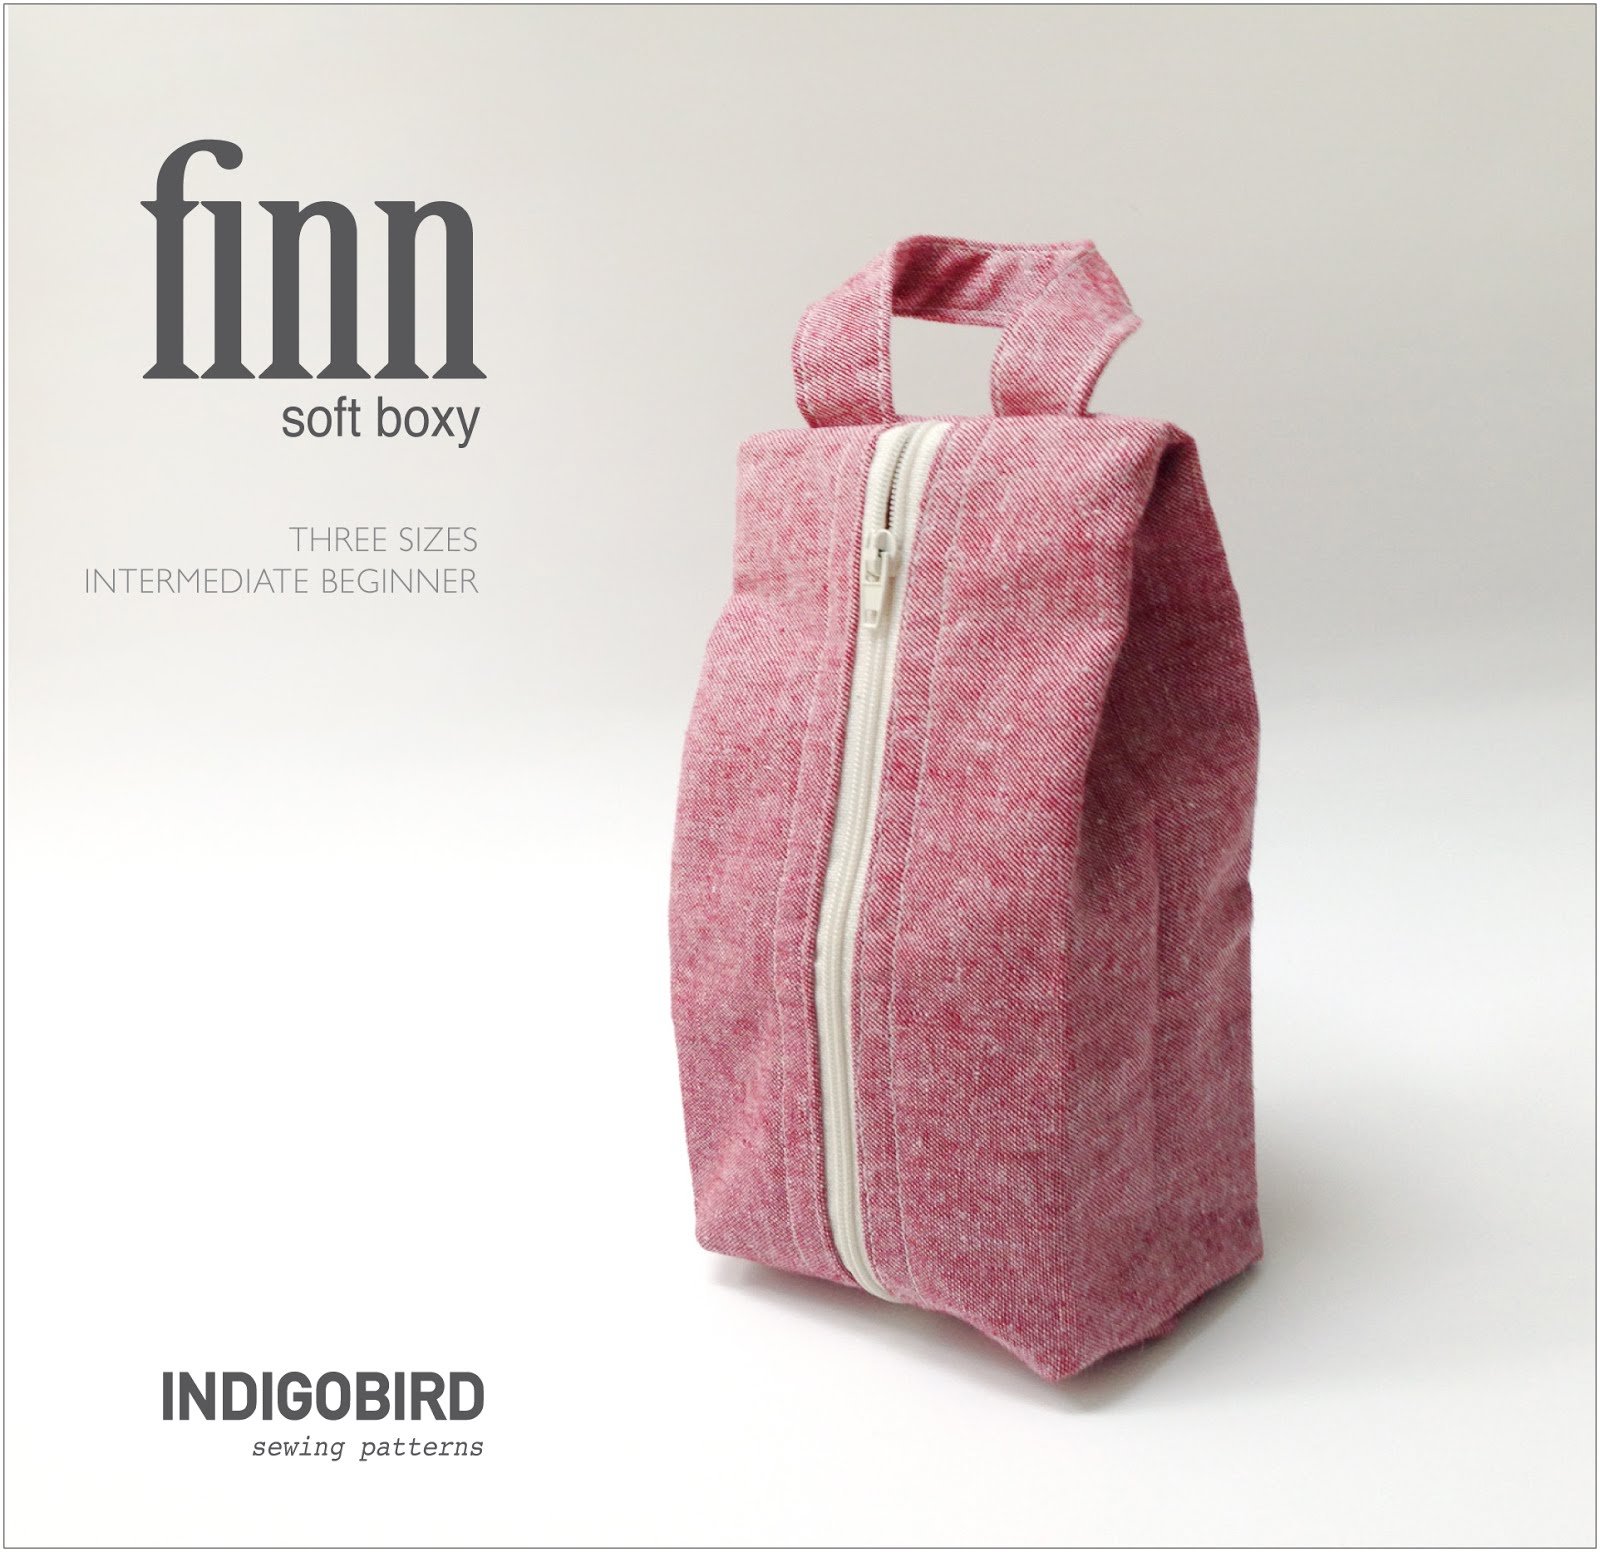 Finn Soft Boxy Bag Pattern